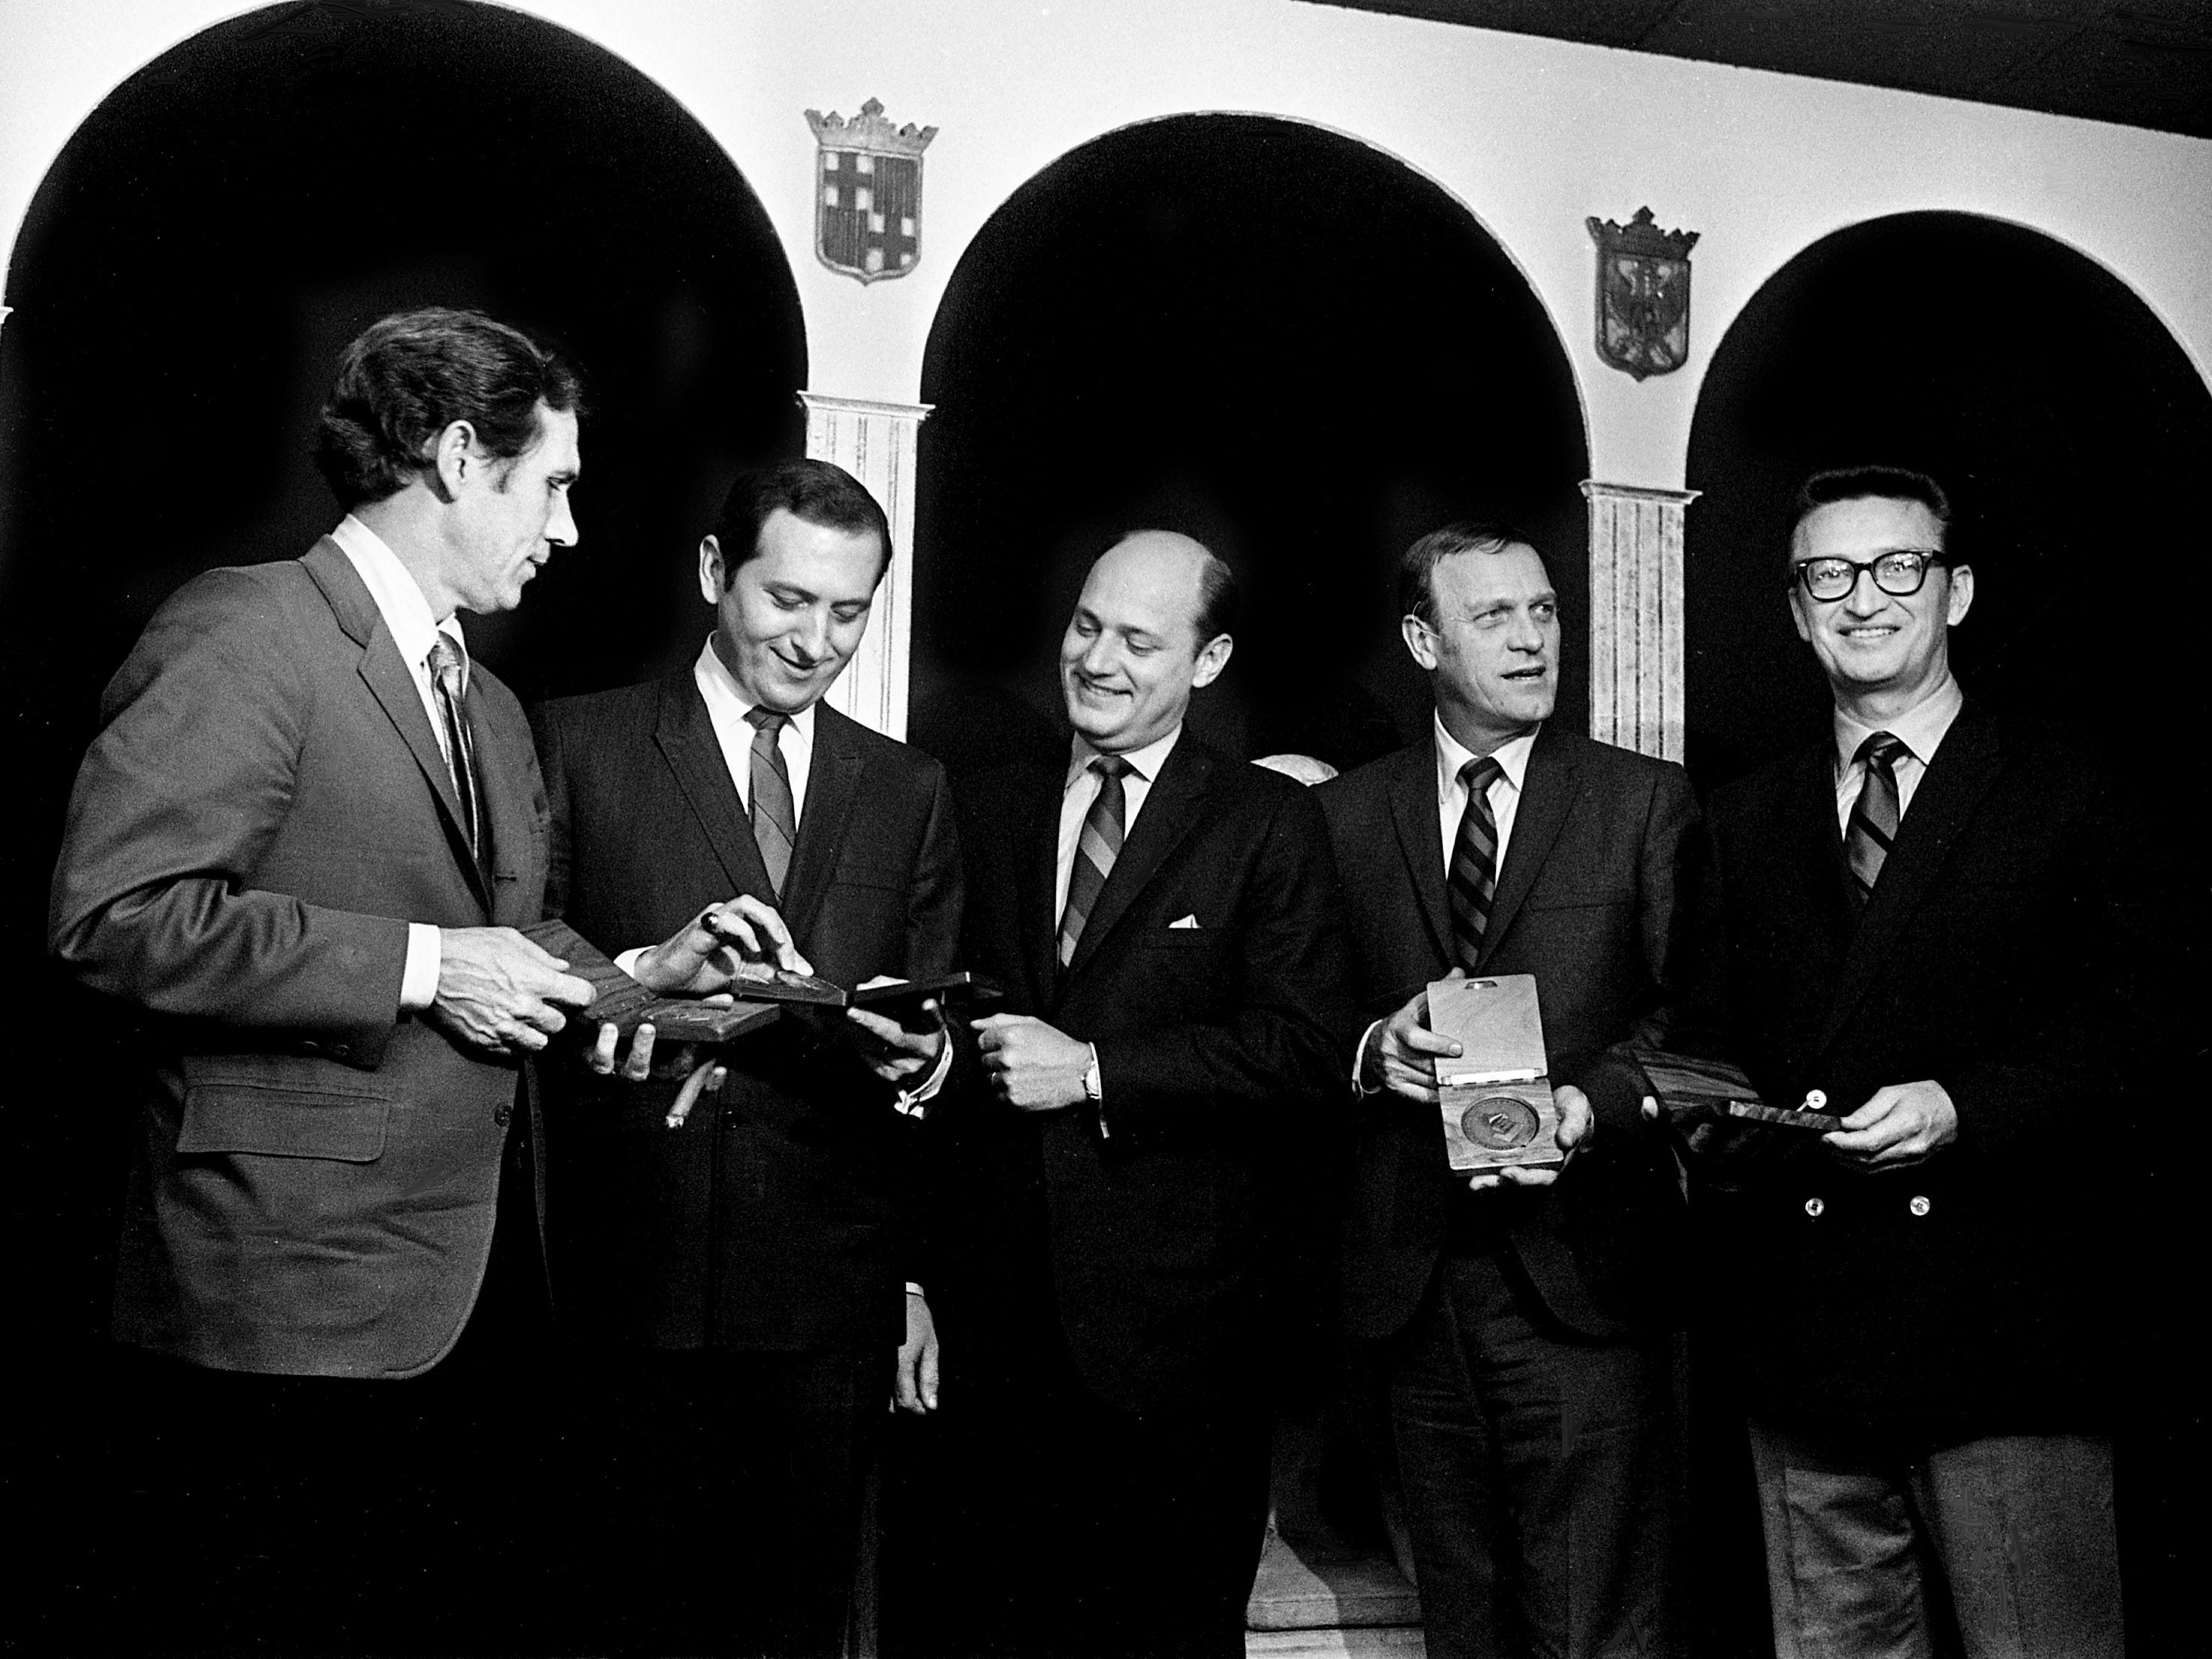 The four past presidents of the Nashville chapter of NARAS (National Academy of Recording Arts and Sciences) check out commemorative medallions that have just been presented to them Jan. 30, 1969, by guitarist Chet Atkins, left, a leader in the Nashville Sound. They are Buddy Killen, second from left, Bill Denny, Eddy Arnold and Harold Bradley.